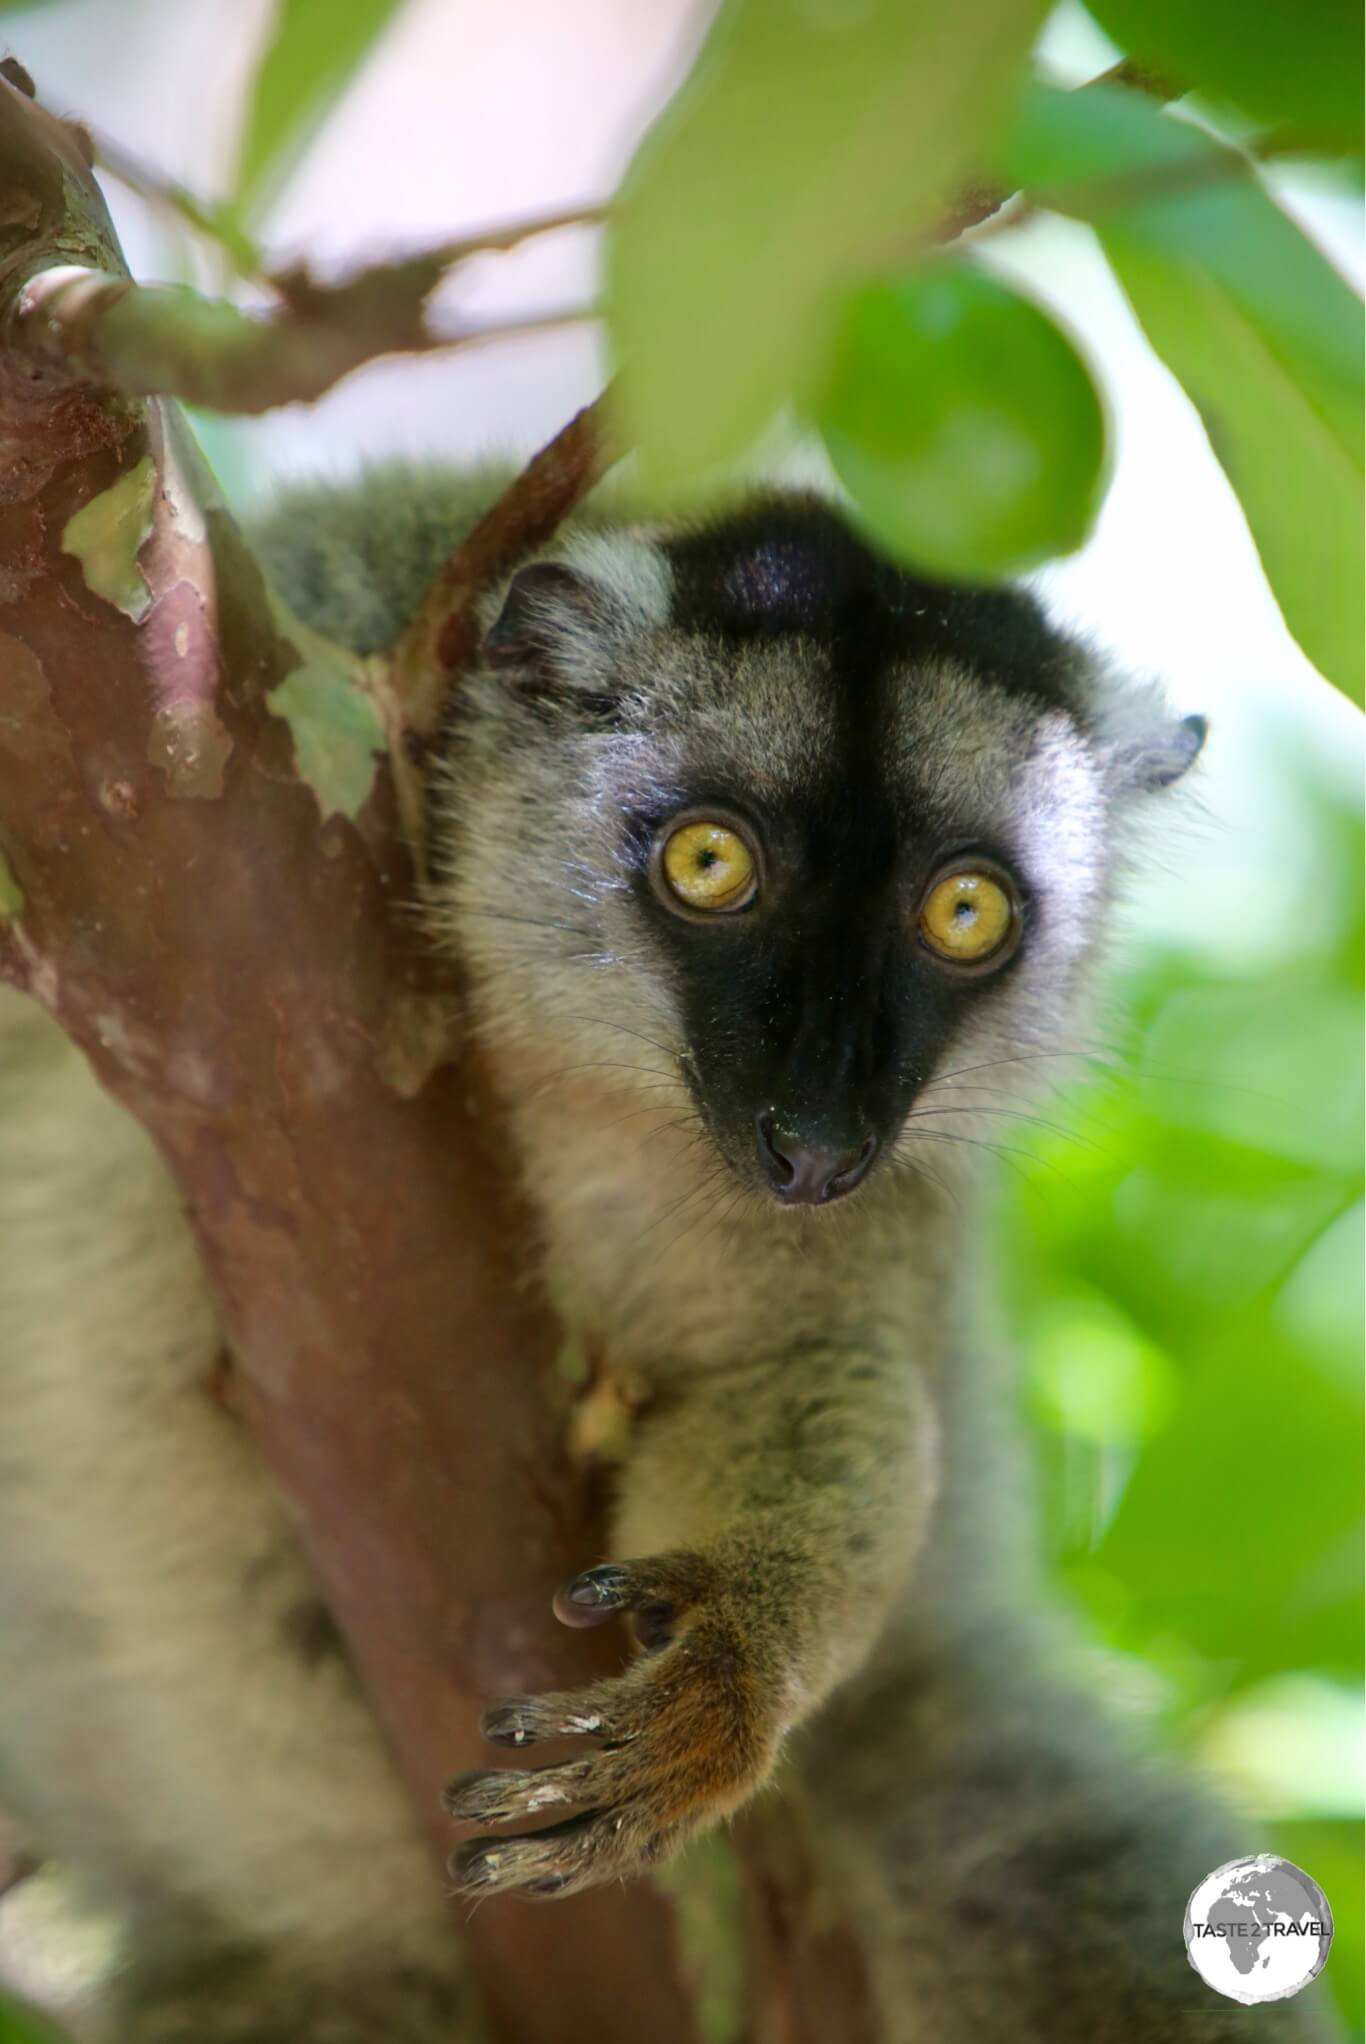 Lemurs are very inquisitive creatures which allows for excellent photography as they pose for the camera.